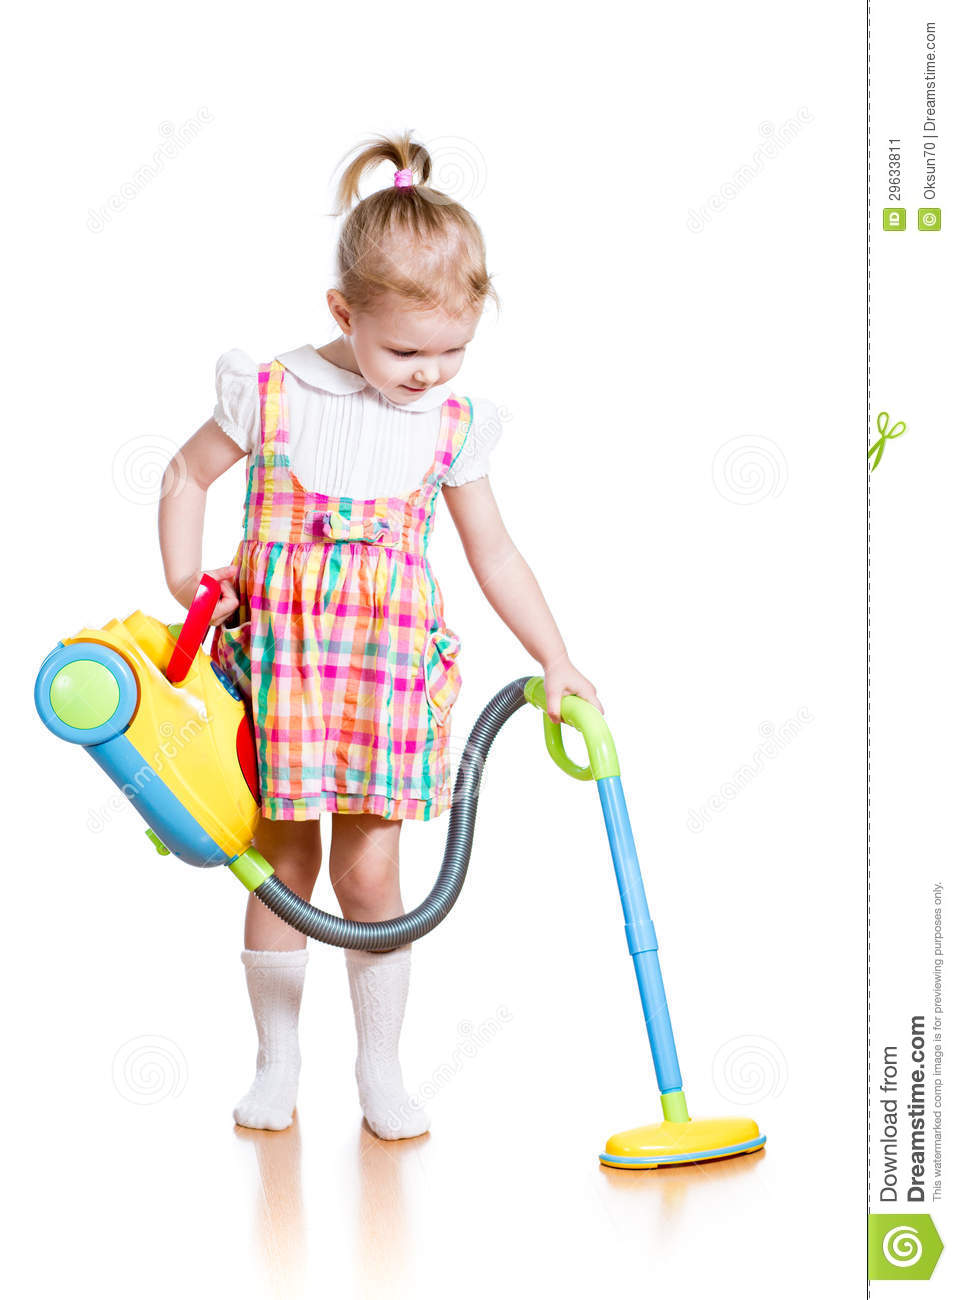 Child Girl Playing And Cleaning Room With Toy Vacuum Cleaner Stock.